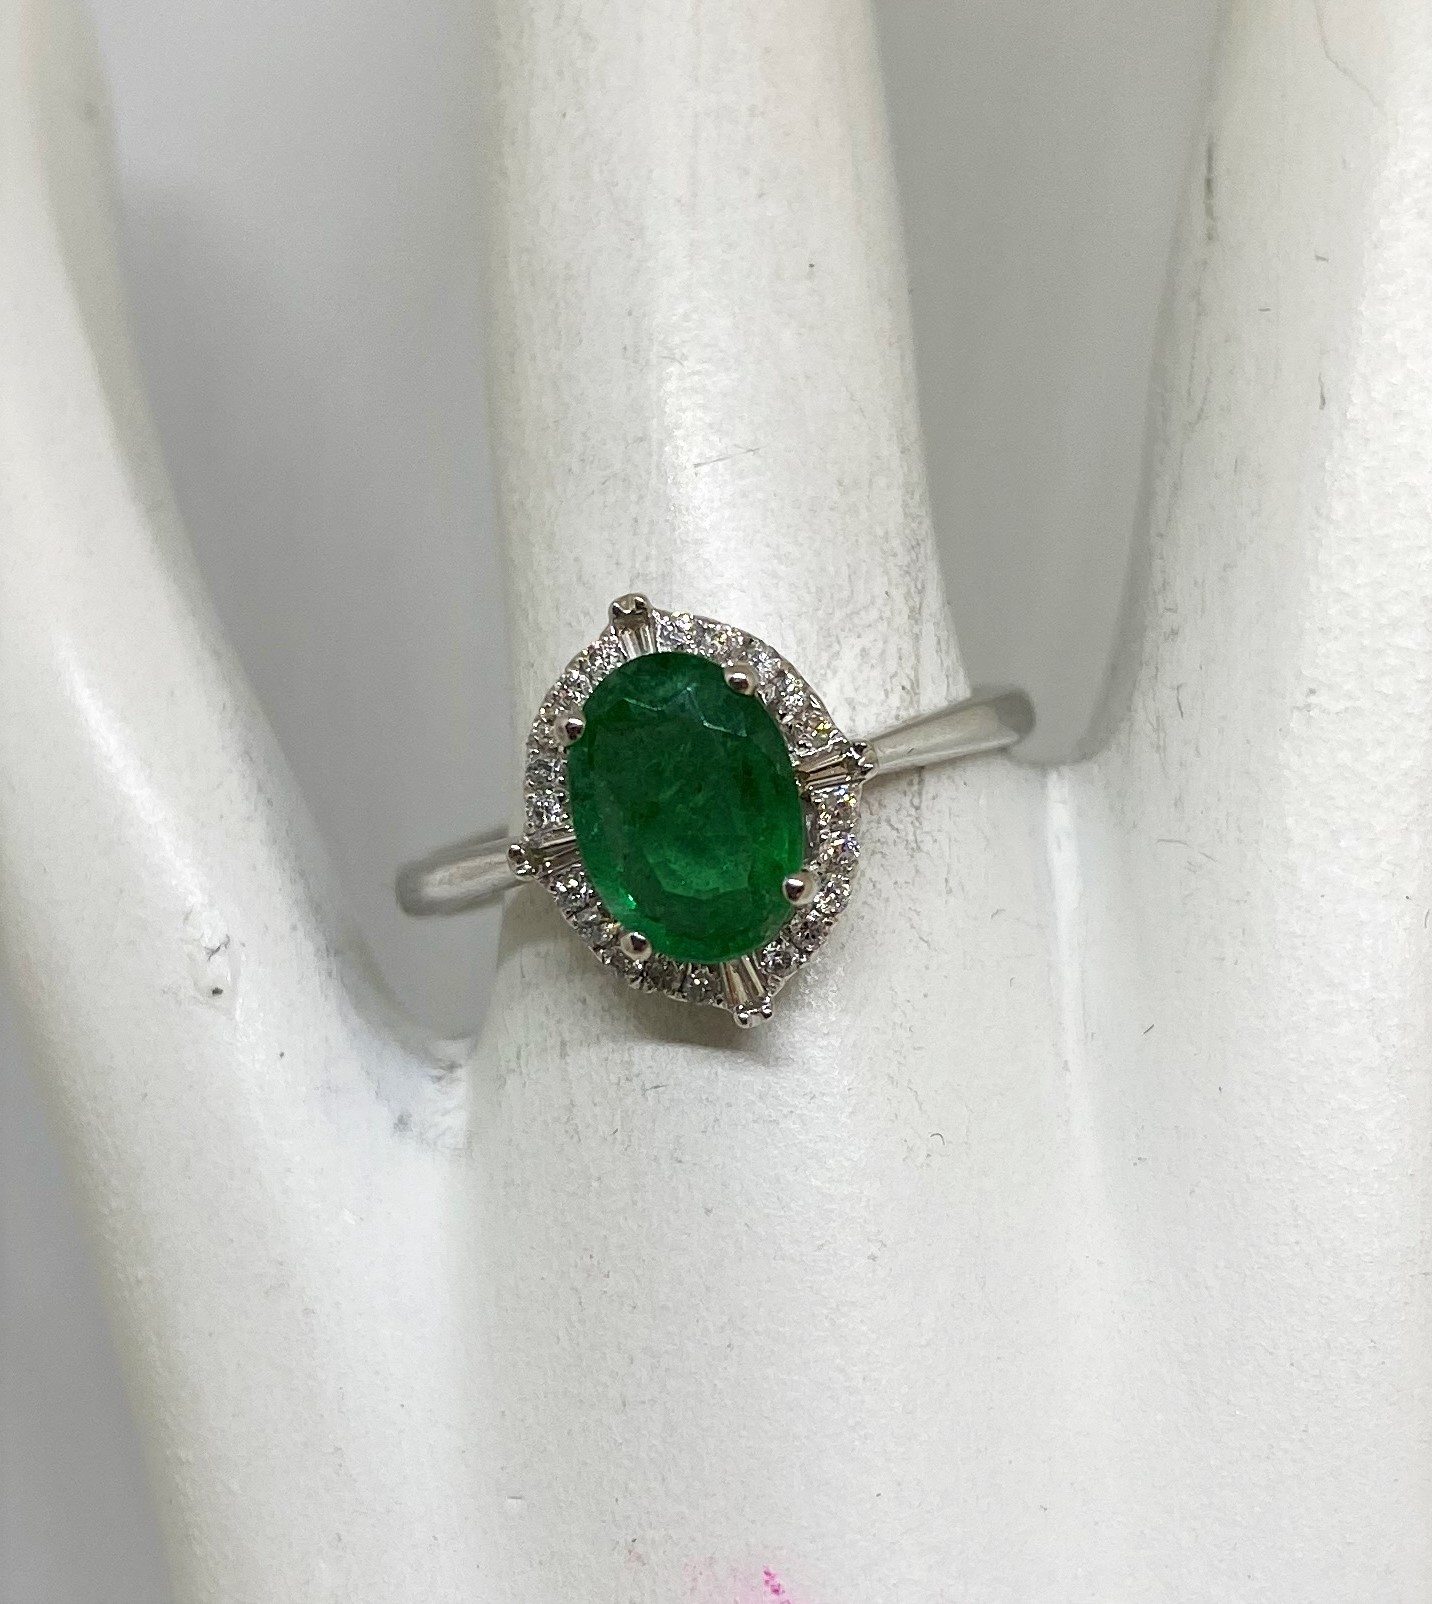 Almost 1 Carat Emerald Diamond Ring